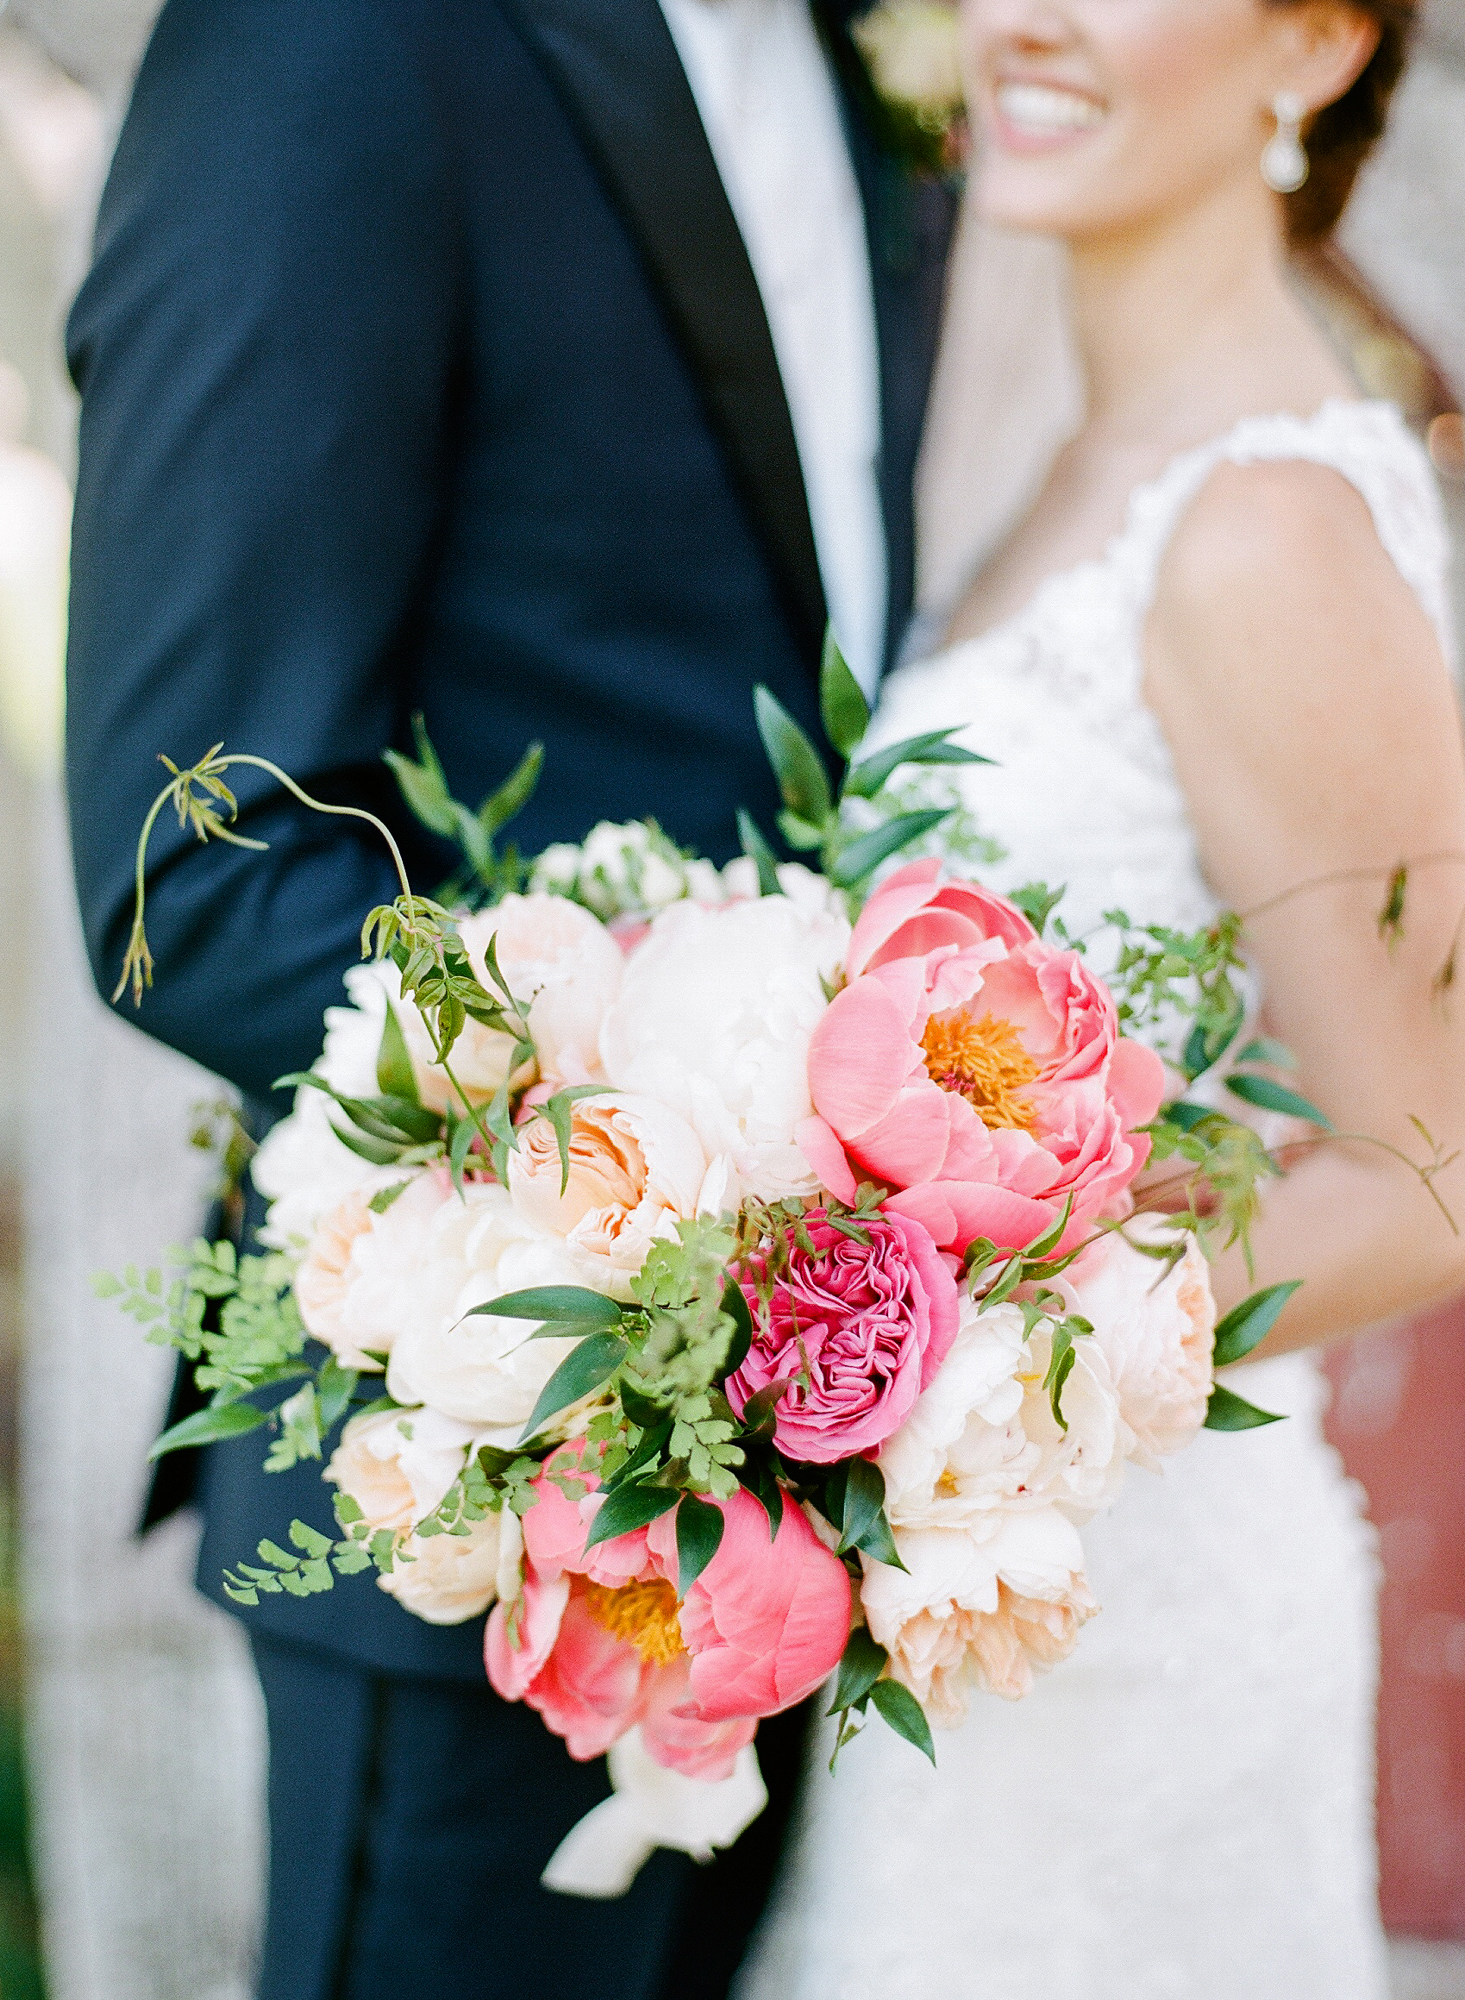 coral-and-white peony bouquet